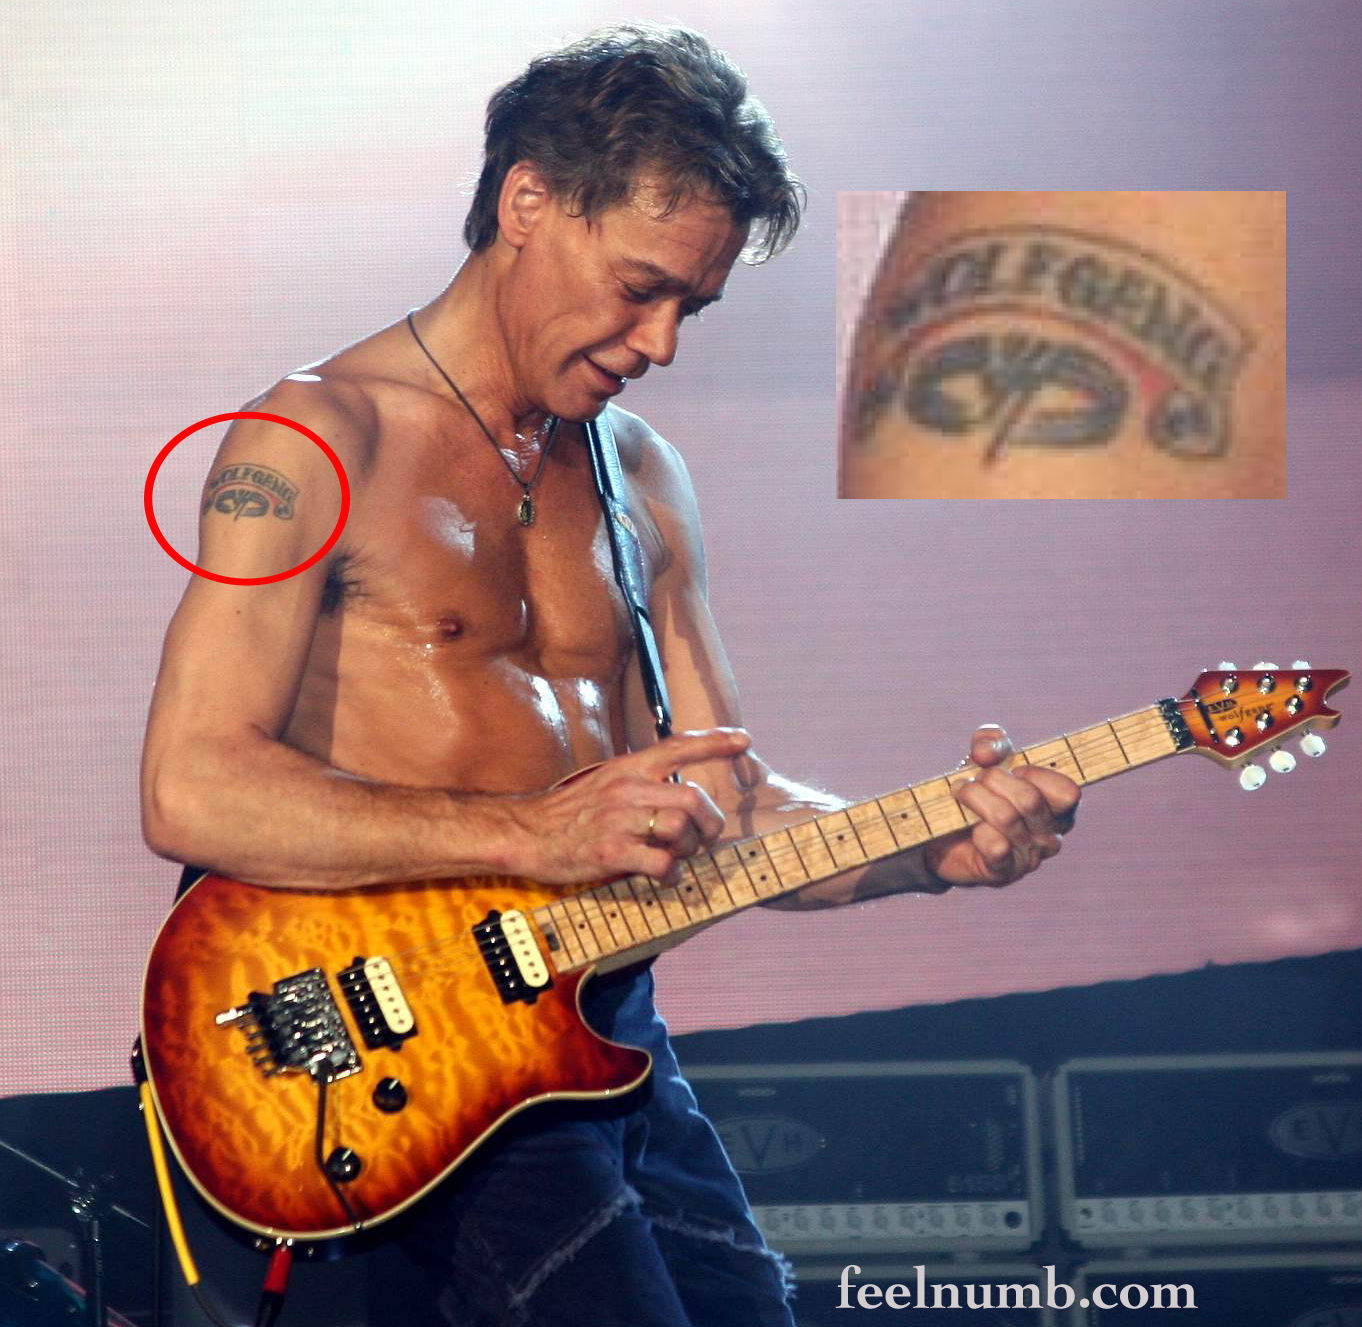 Tattoos meaning frusciante john Red Hot